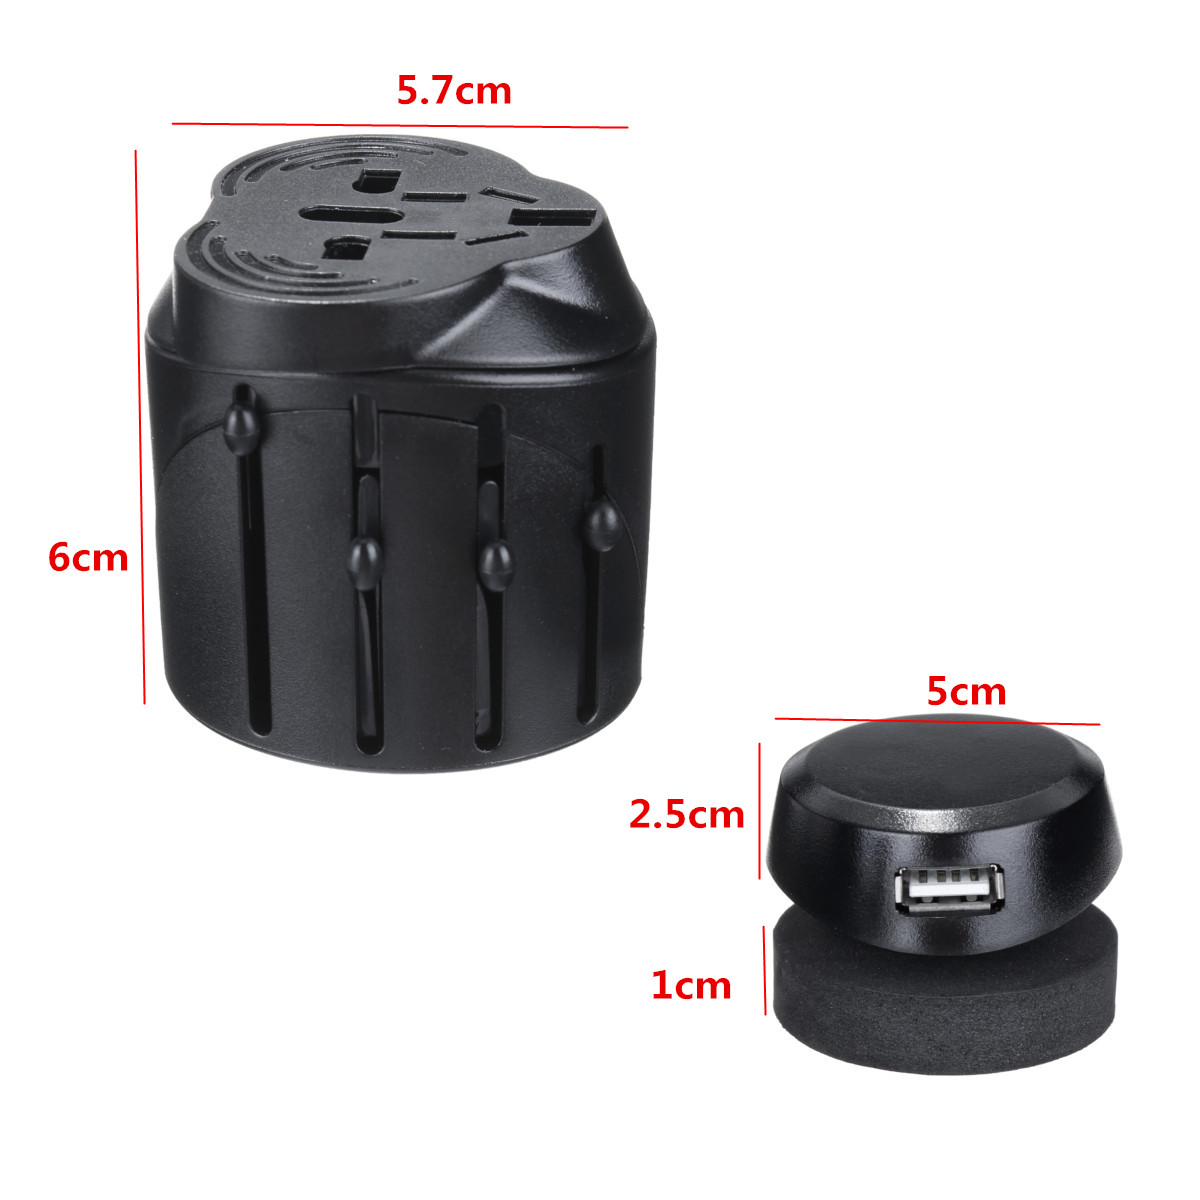 US/AU/UK/EU Universal AC Power Plug Worldwide Travel Adapter Converter USB Port